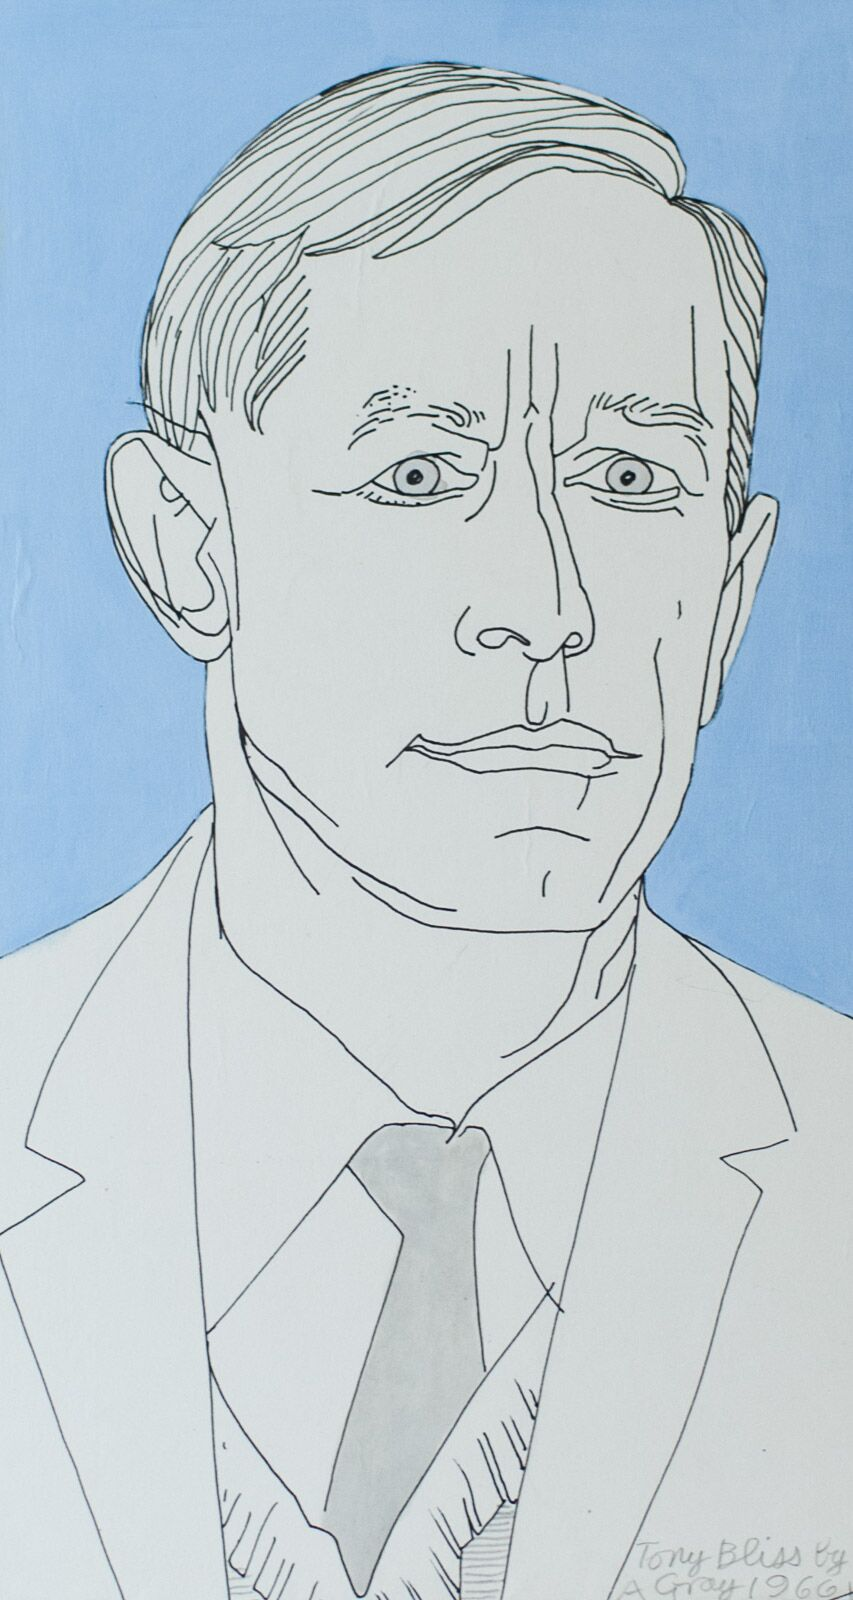 Tony Bliss by Alasdair Gray